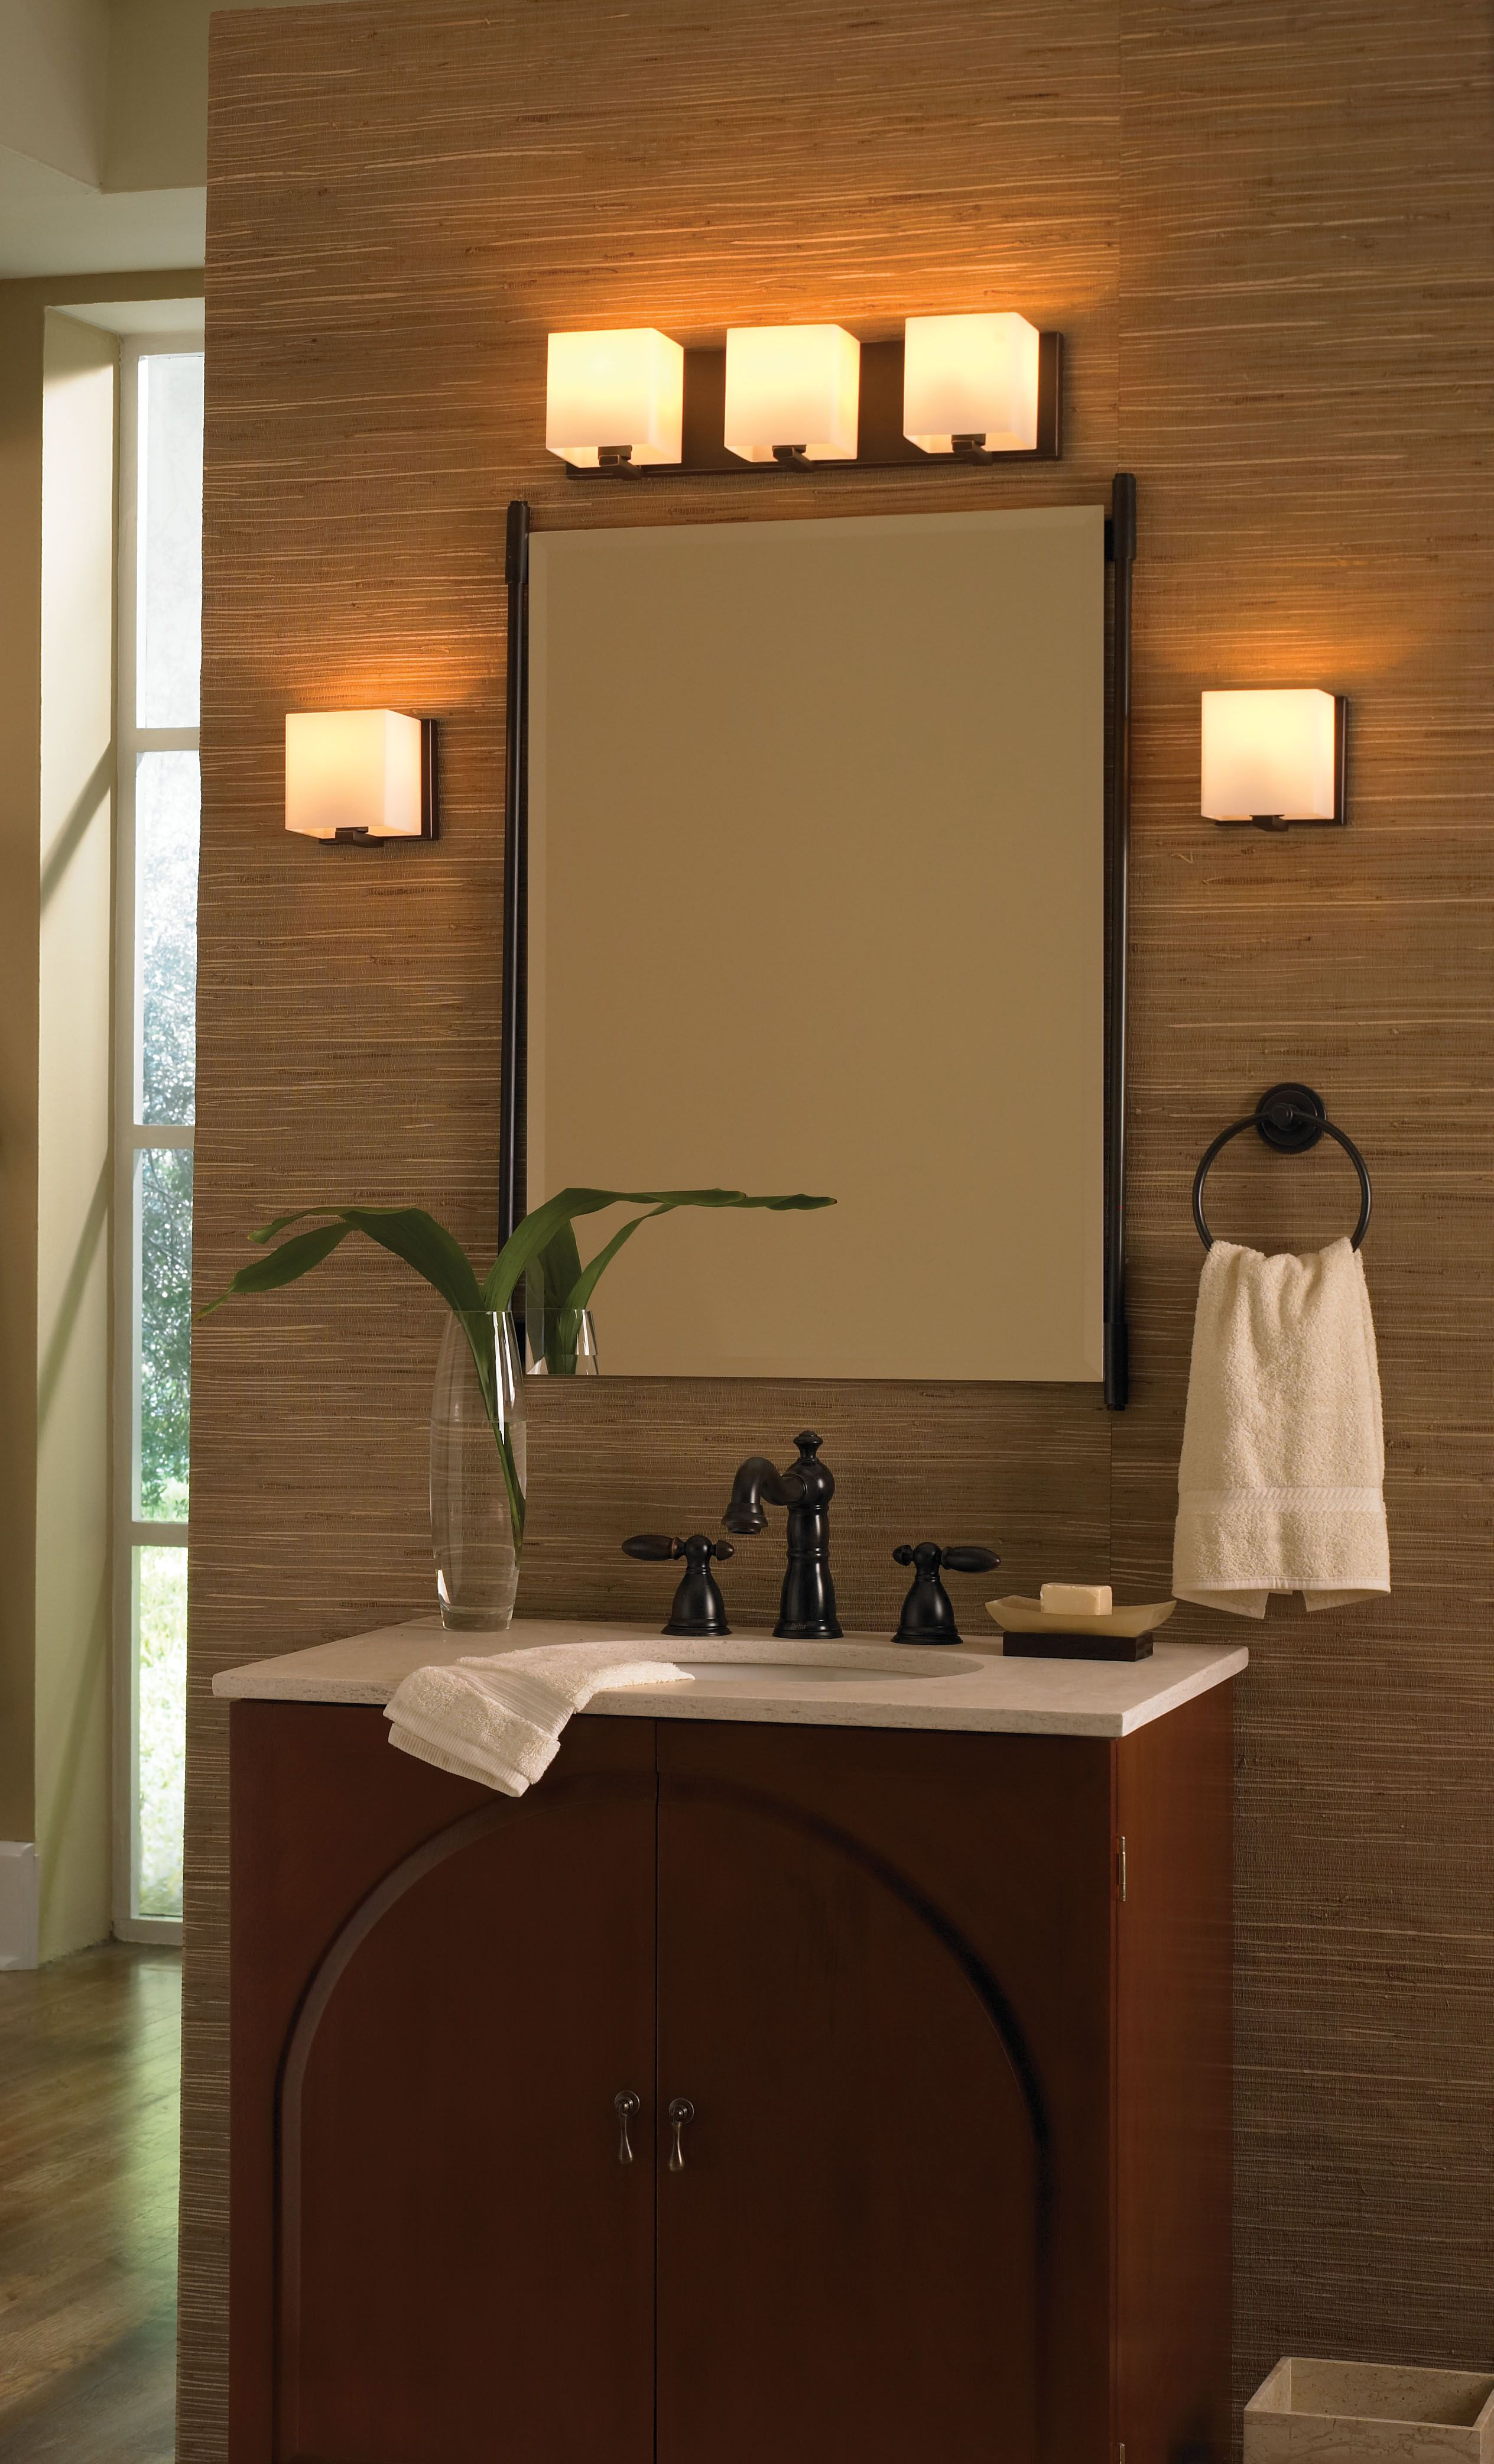 Bathroom Bathroom Attractive Modern Bathroom Lighting Ideas For Pertaining  To Small Bathroom Light Fixtures. Bathroom Light Fixtures For Small Bathroom .